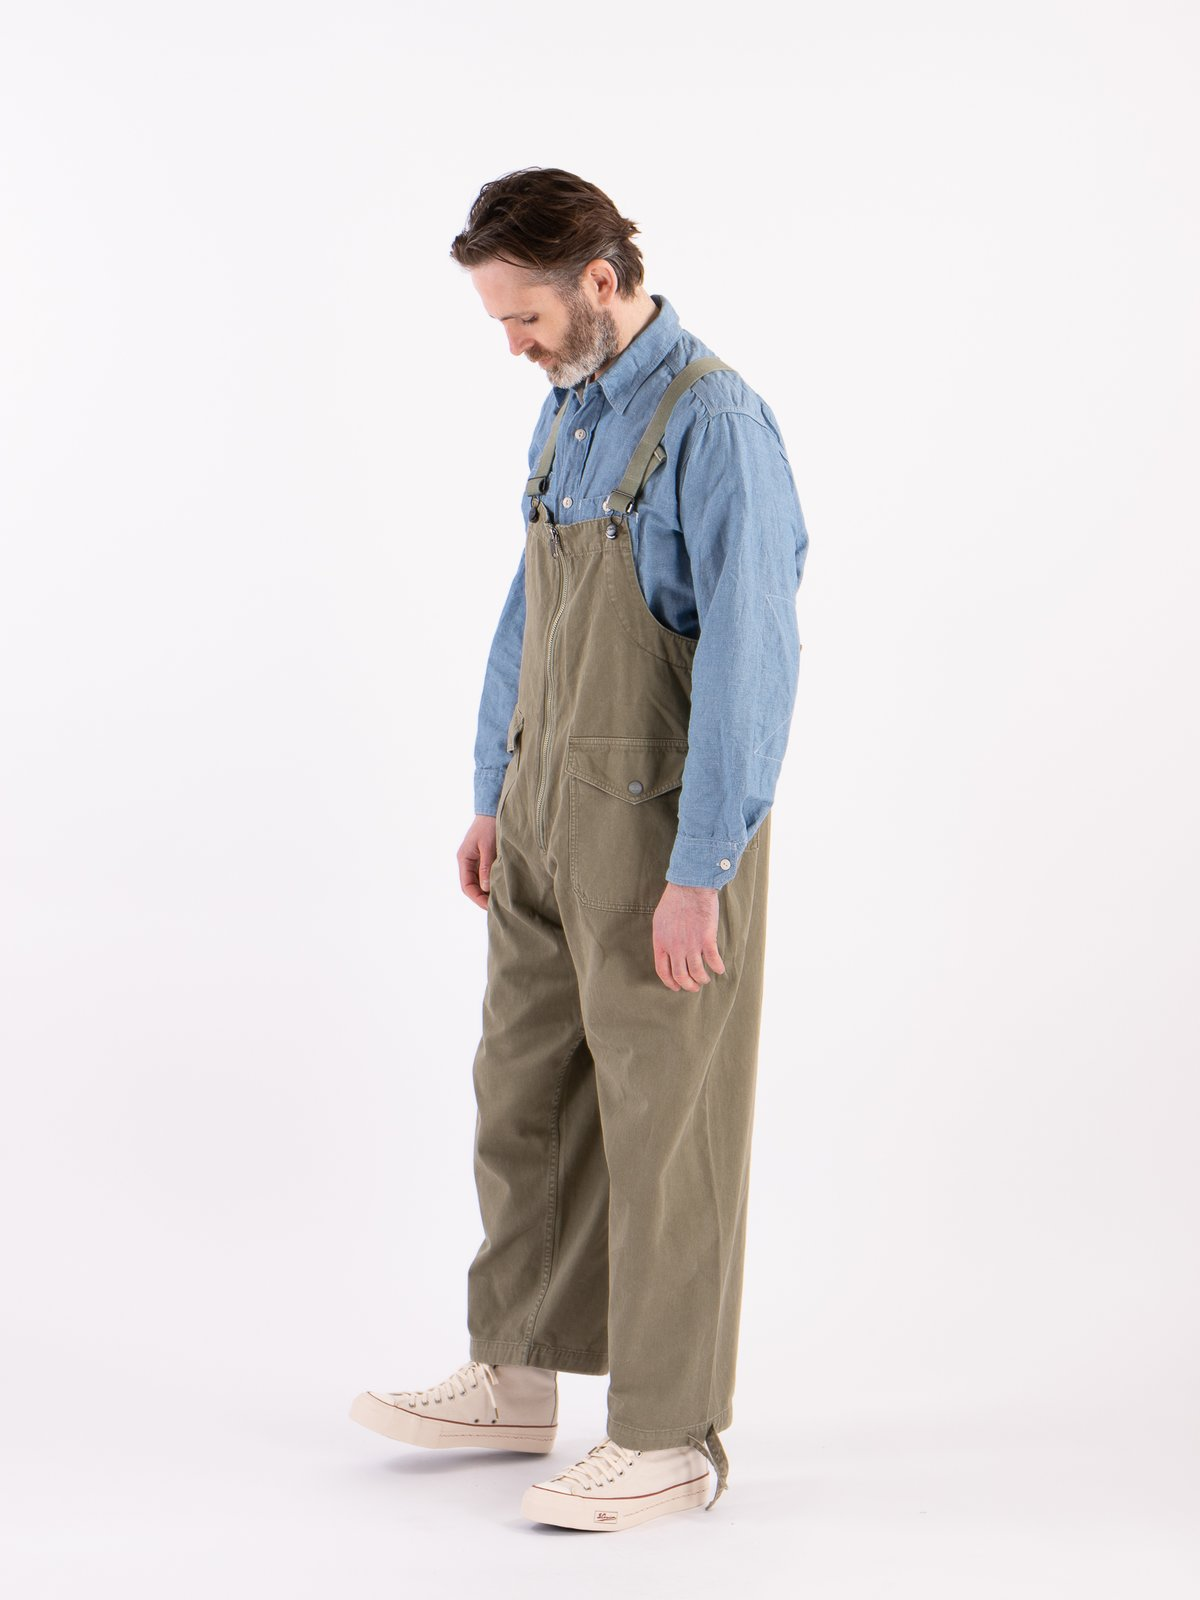 Lybro Washed Army Deck Waders - Image 2